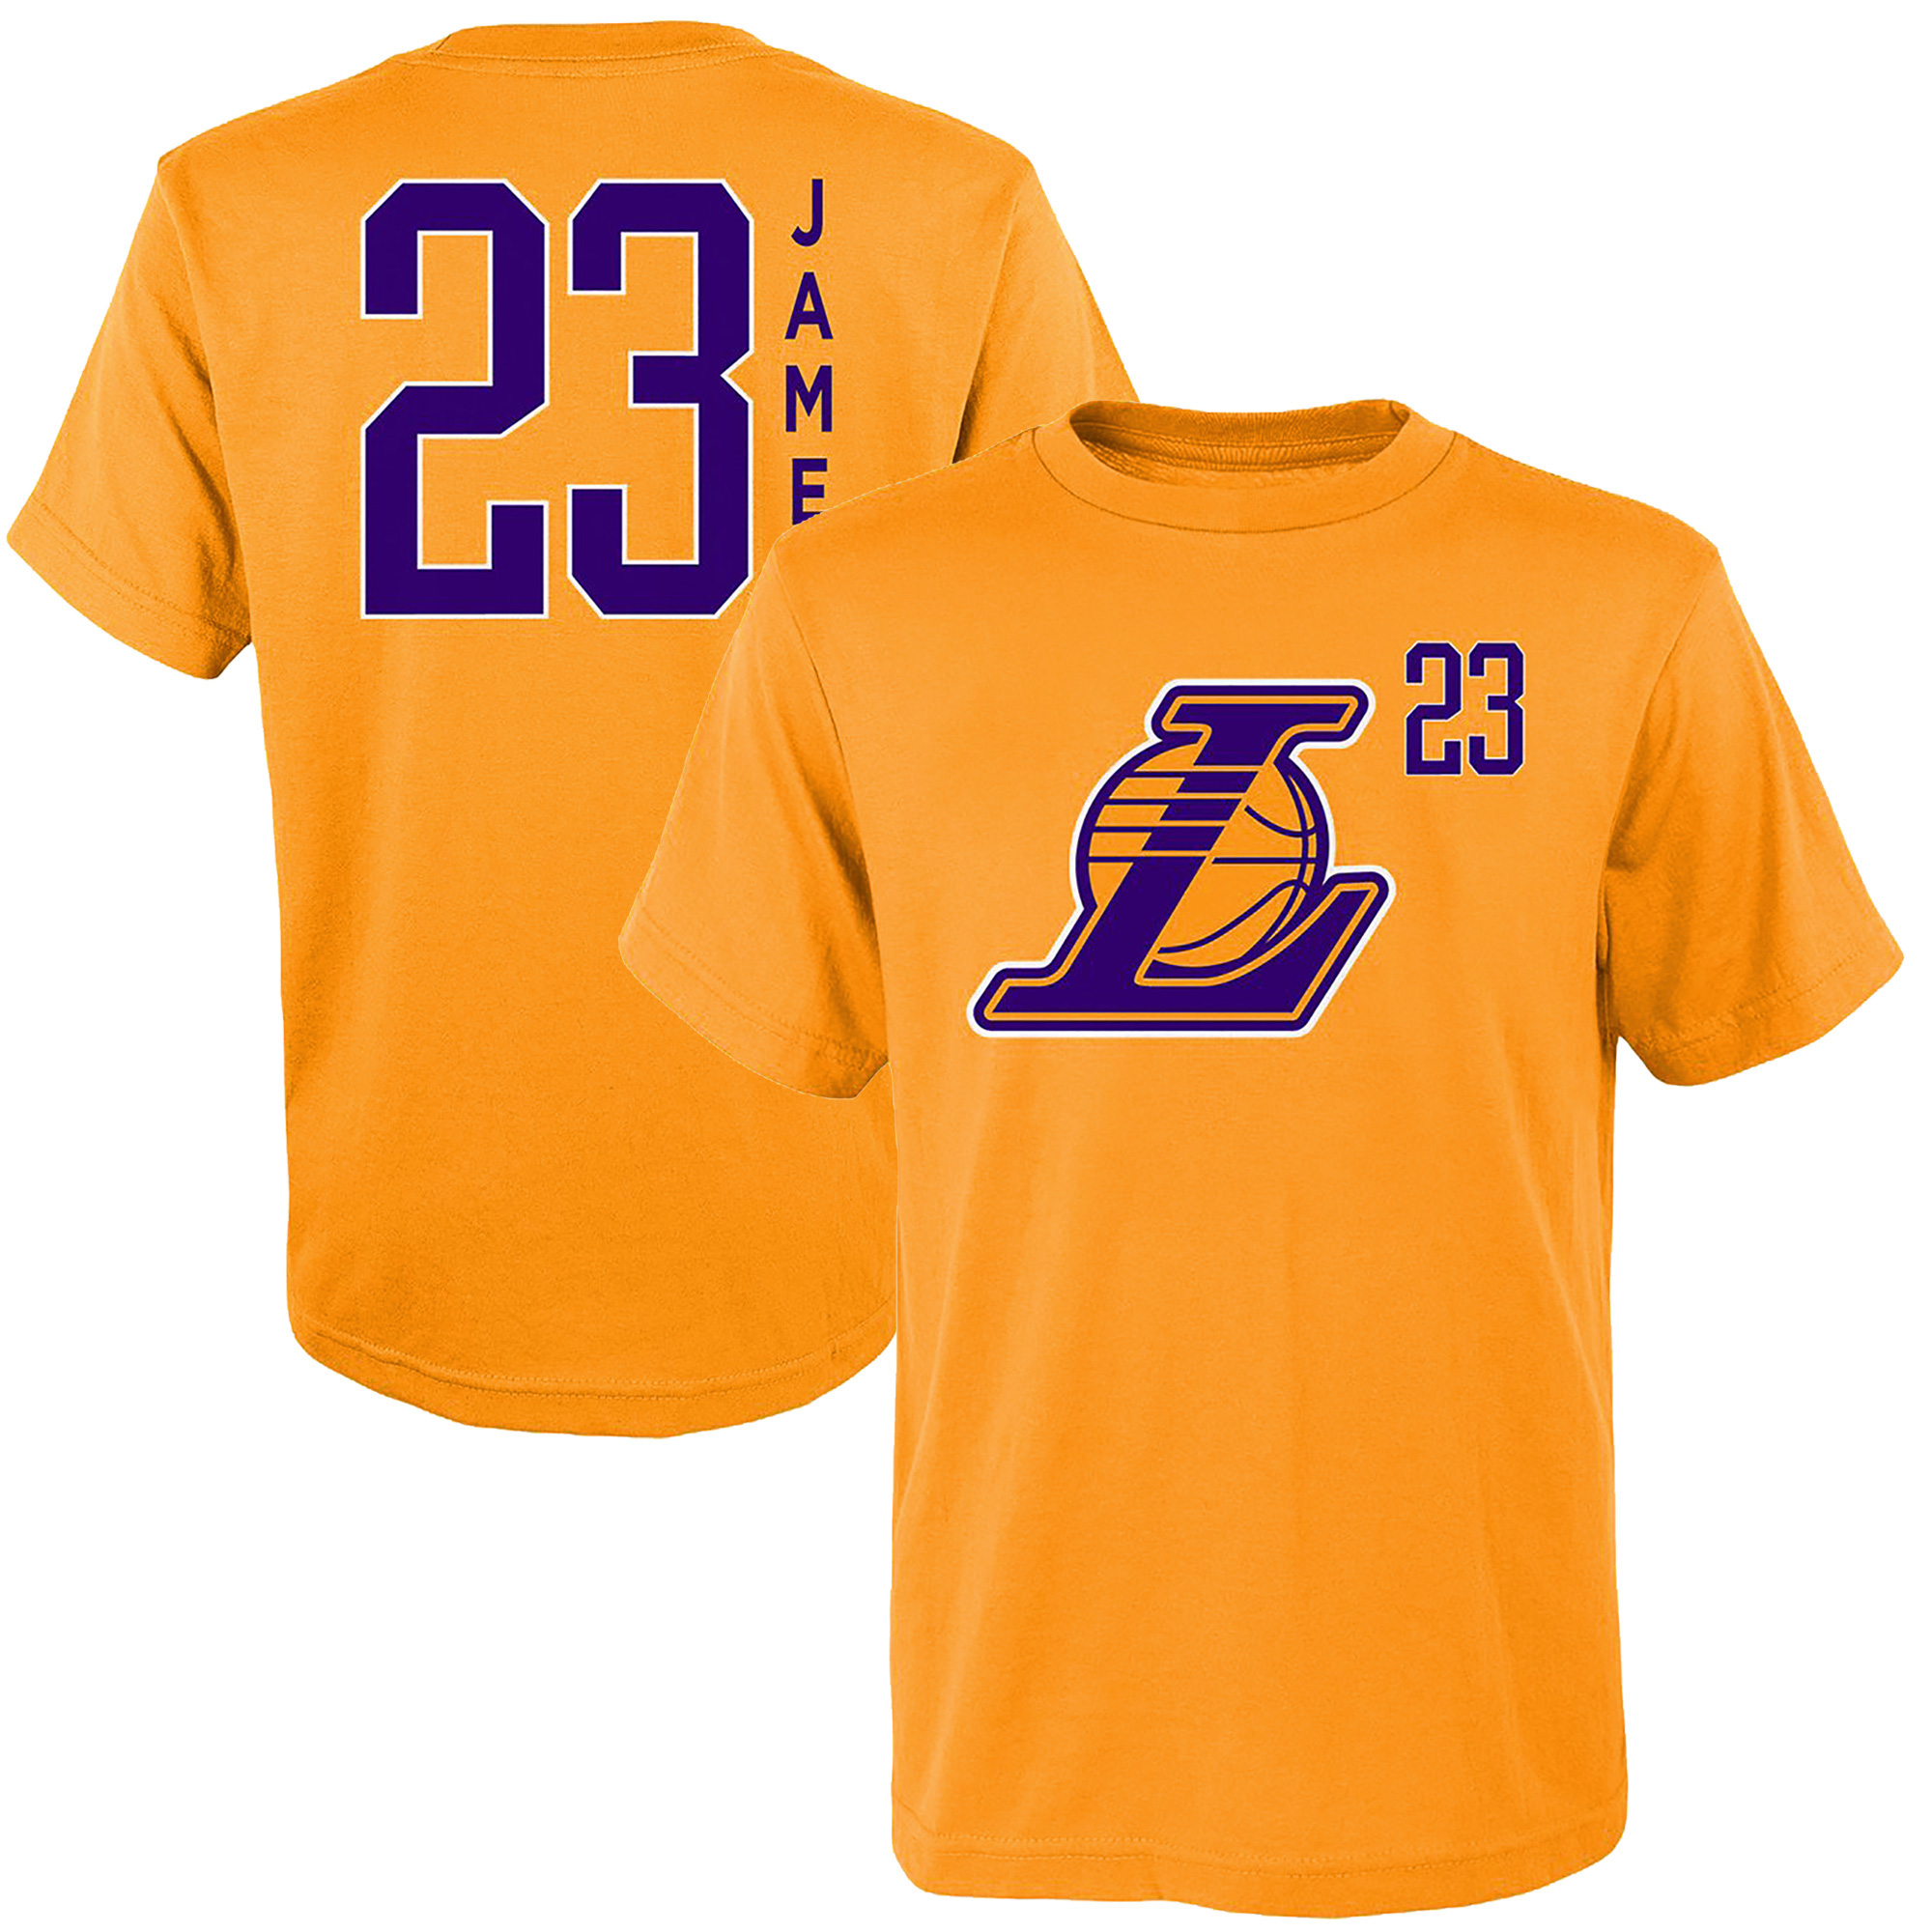 Youth LeBron James Gold Los Angeles Lakers Name & Number Team T-Shirt